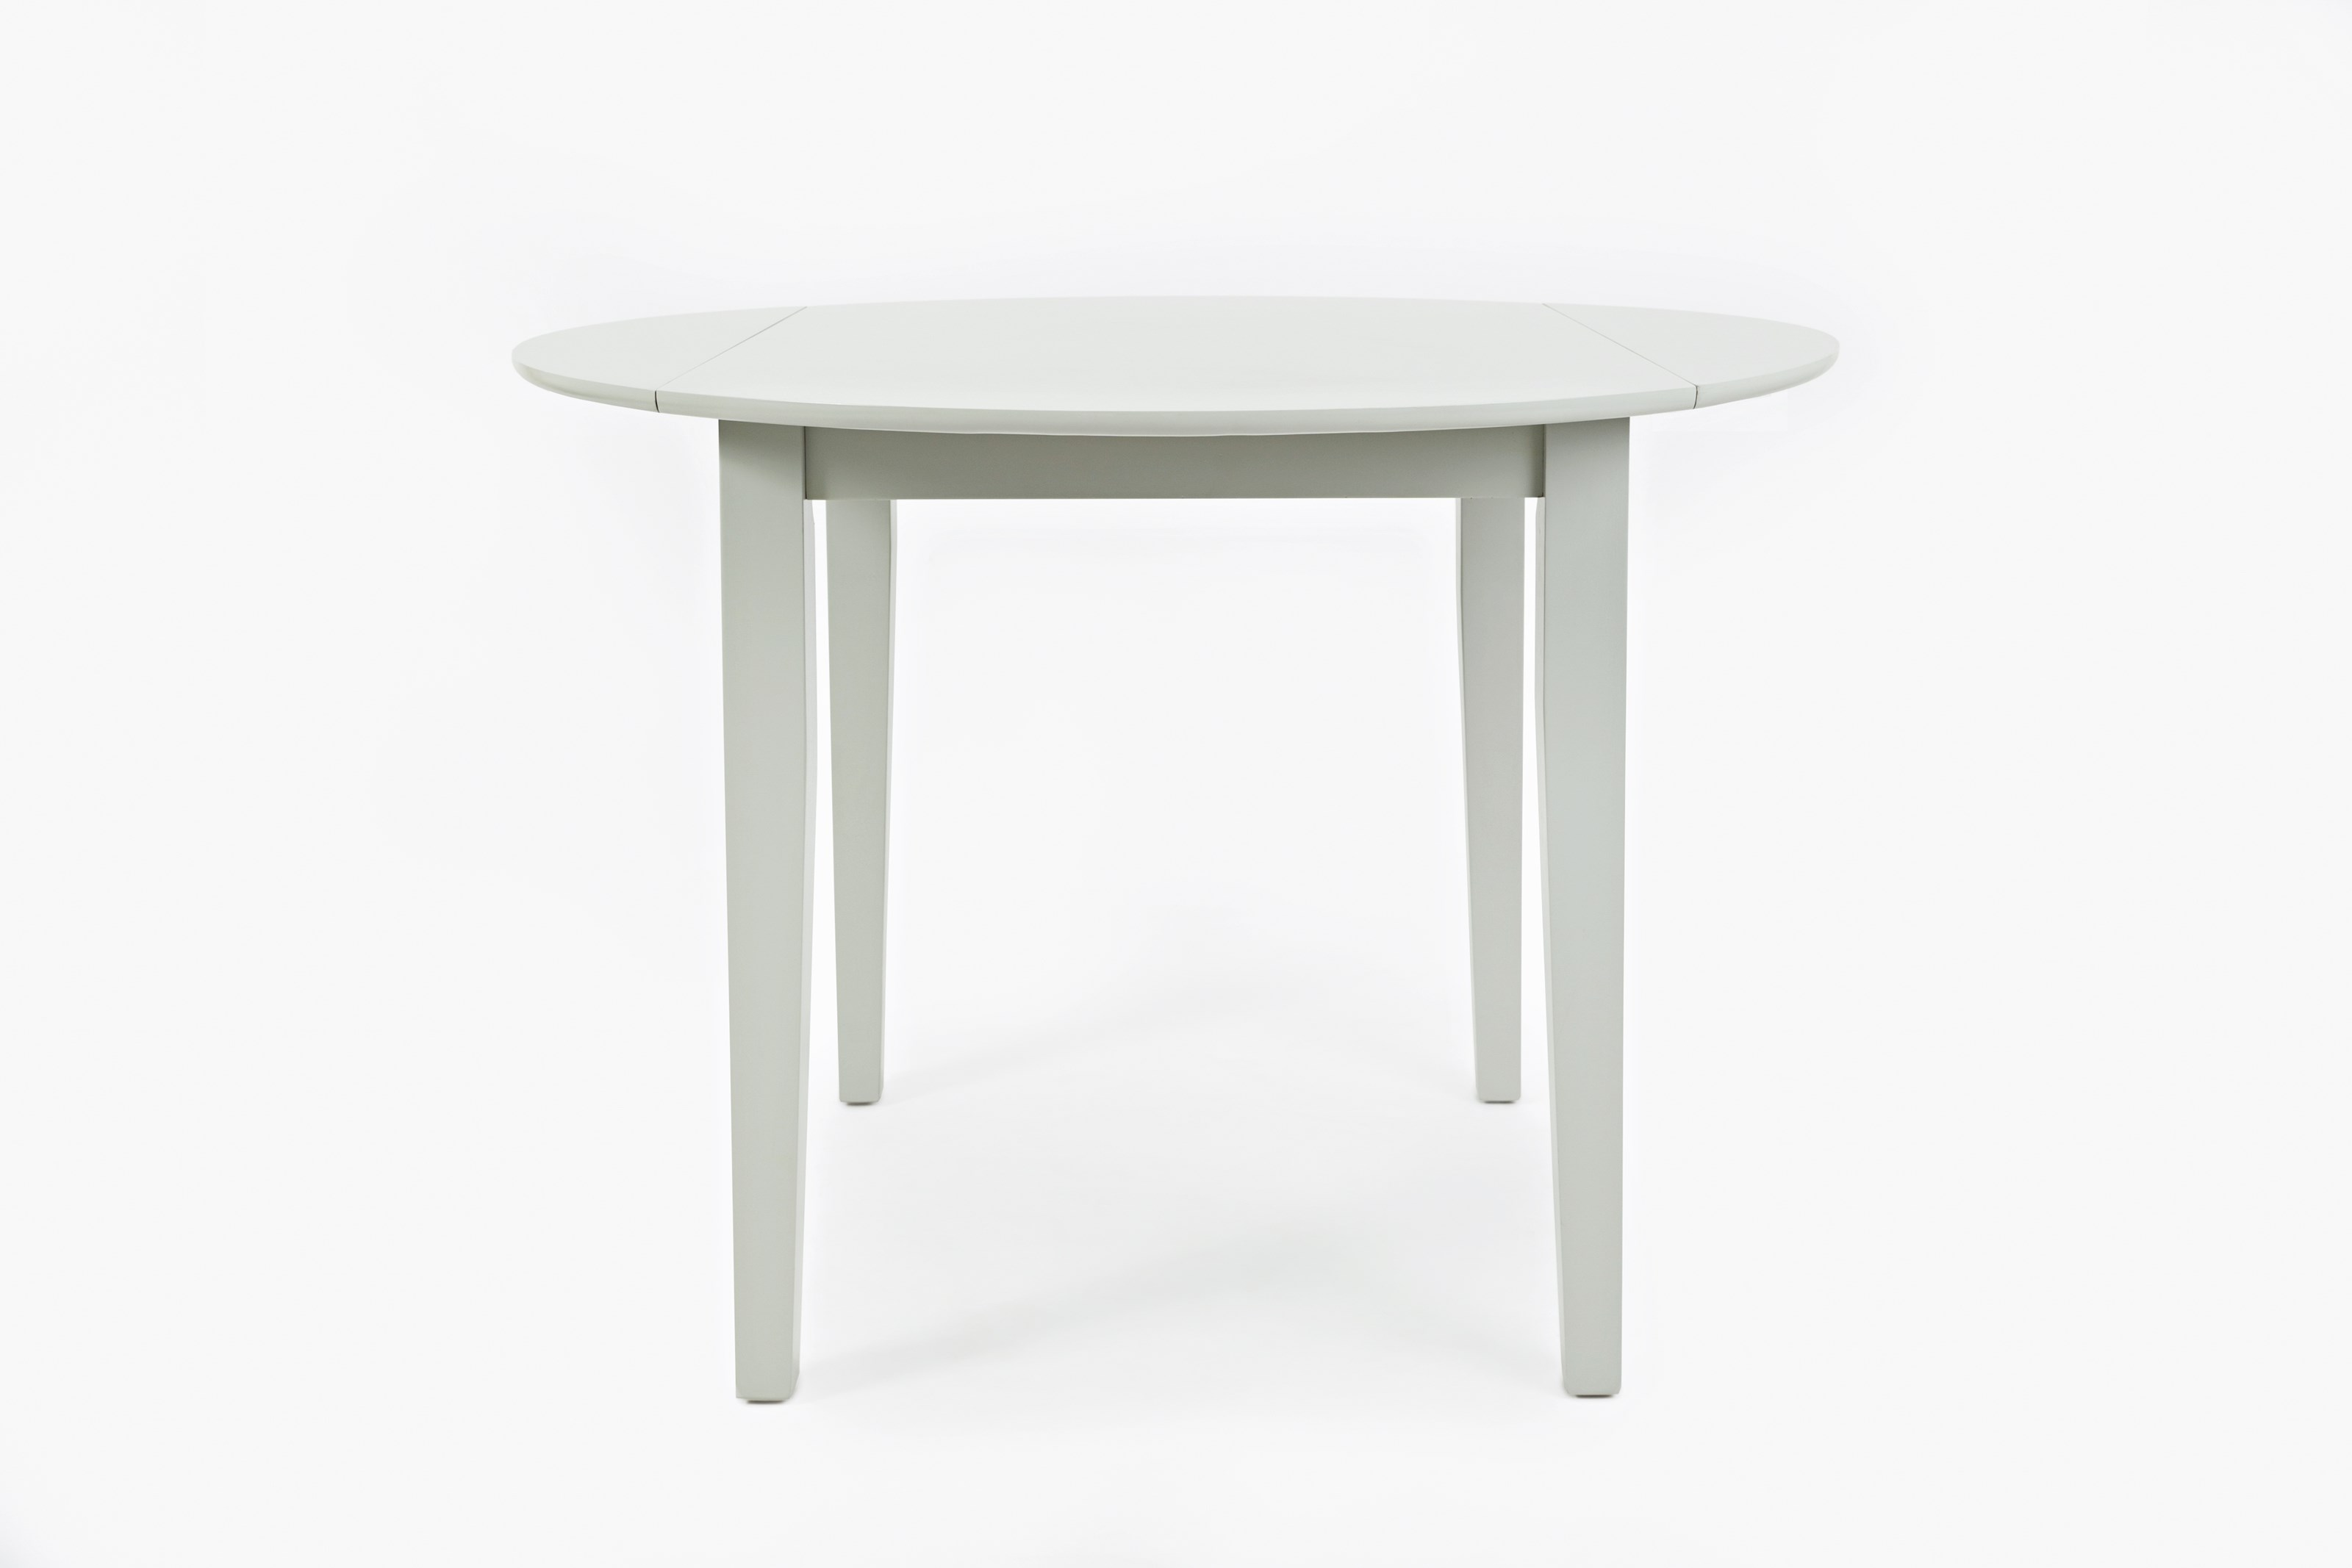 Everyday Classics Round Drop Leaf Table by Jofran at Stoney Creek Furniture